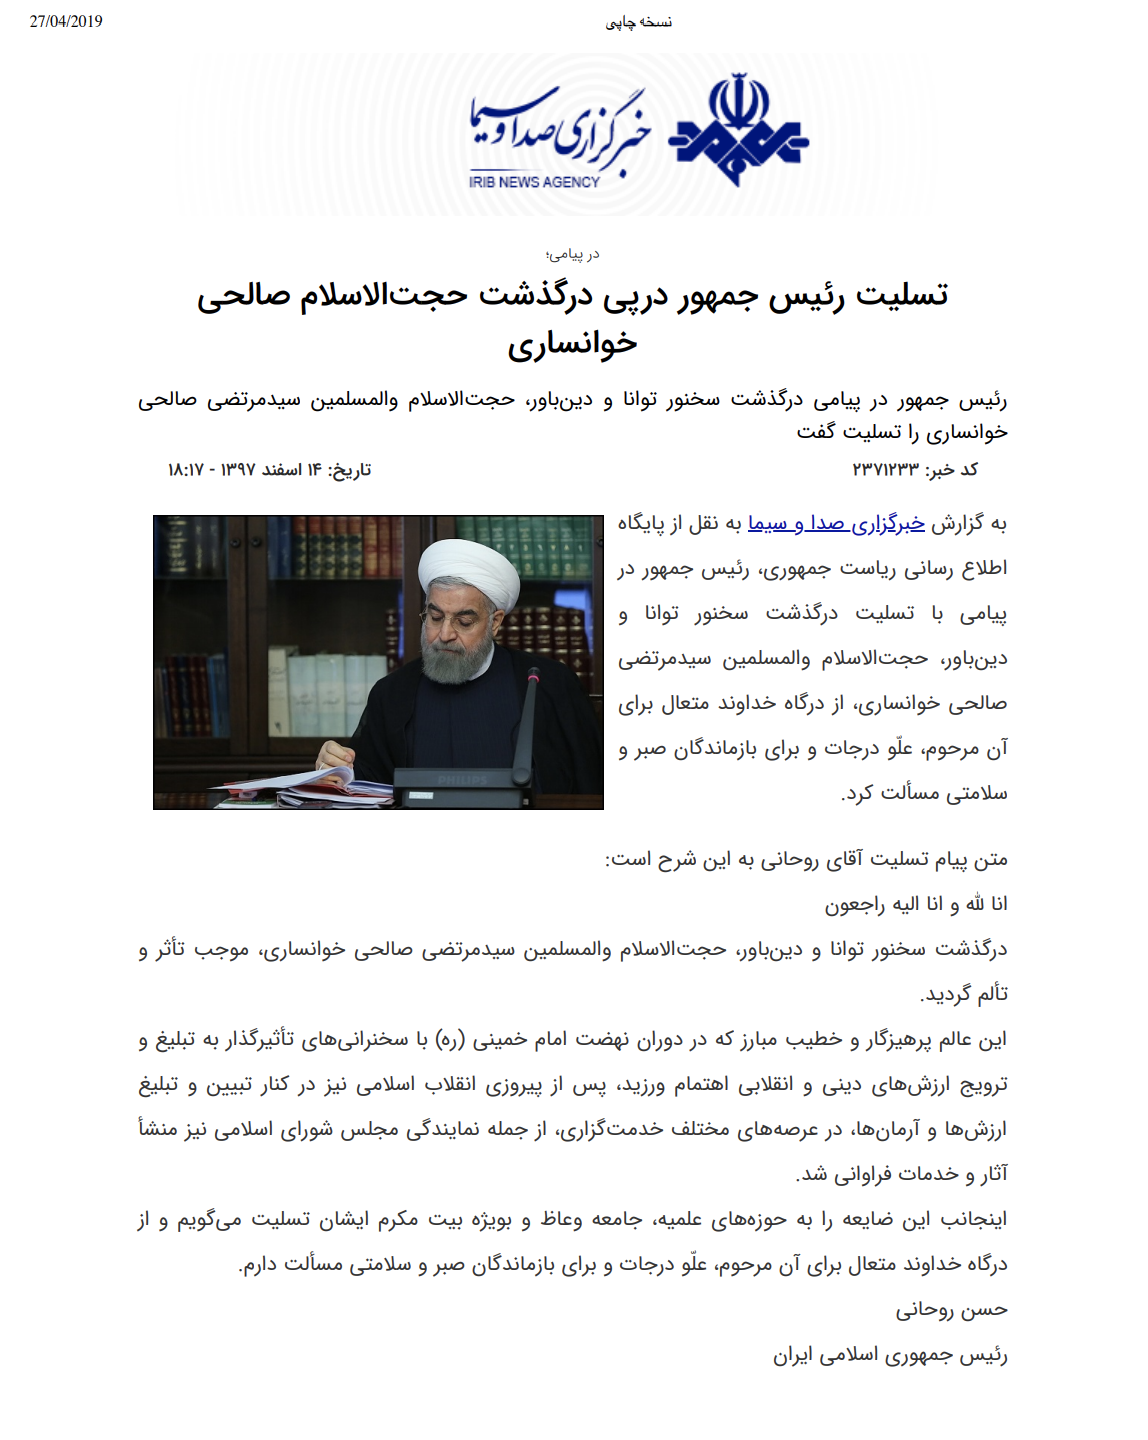 Reaction by the Iranian president Rouhani to the passing of Seyed Morteza Salehi Khansari